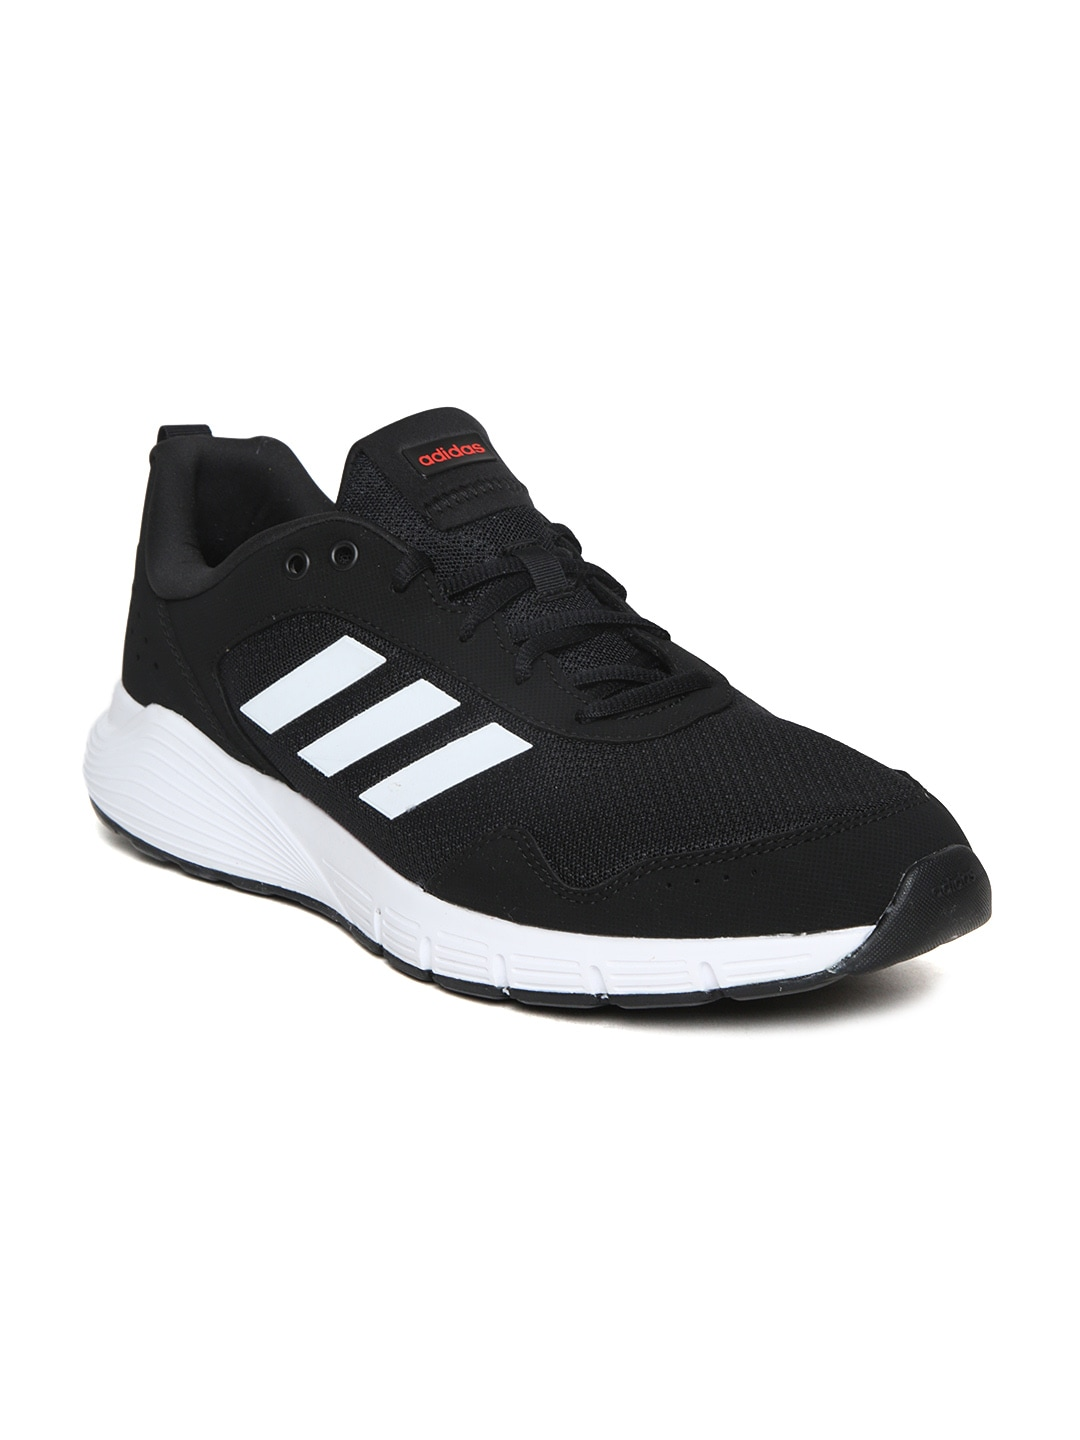 save off fa2ed 318d8 Adidas Basketball Shoes  Buy Adidas Basketball Shoes Online in India at  Best Price